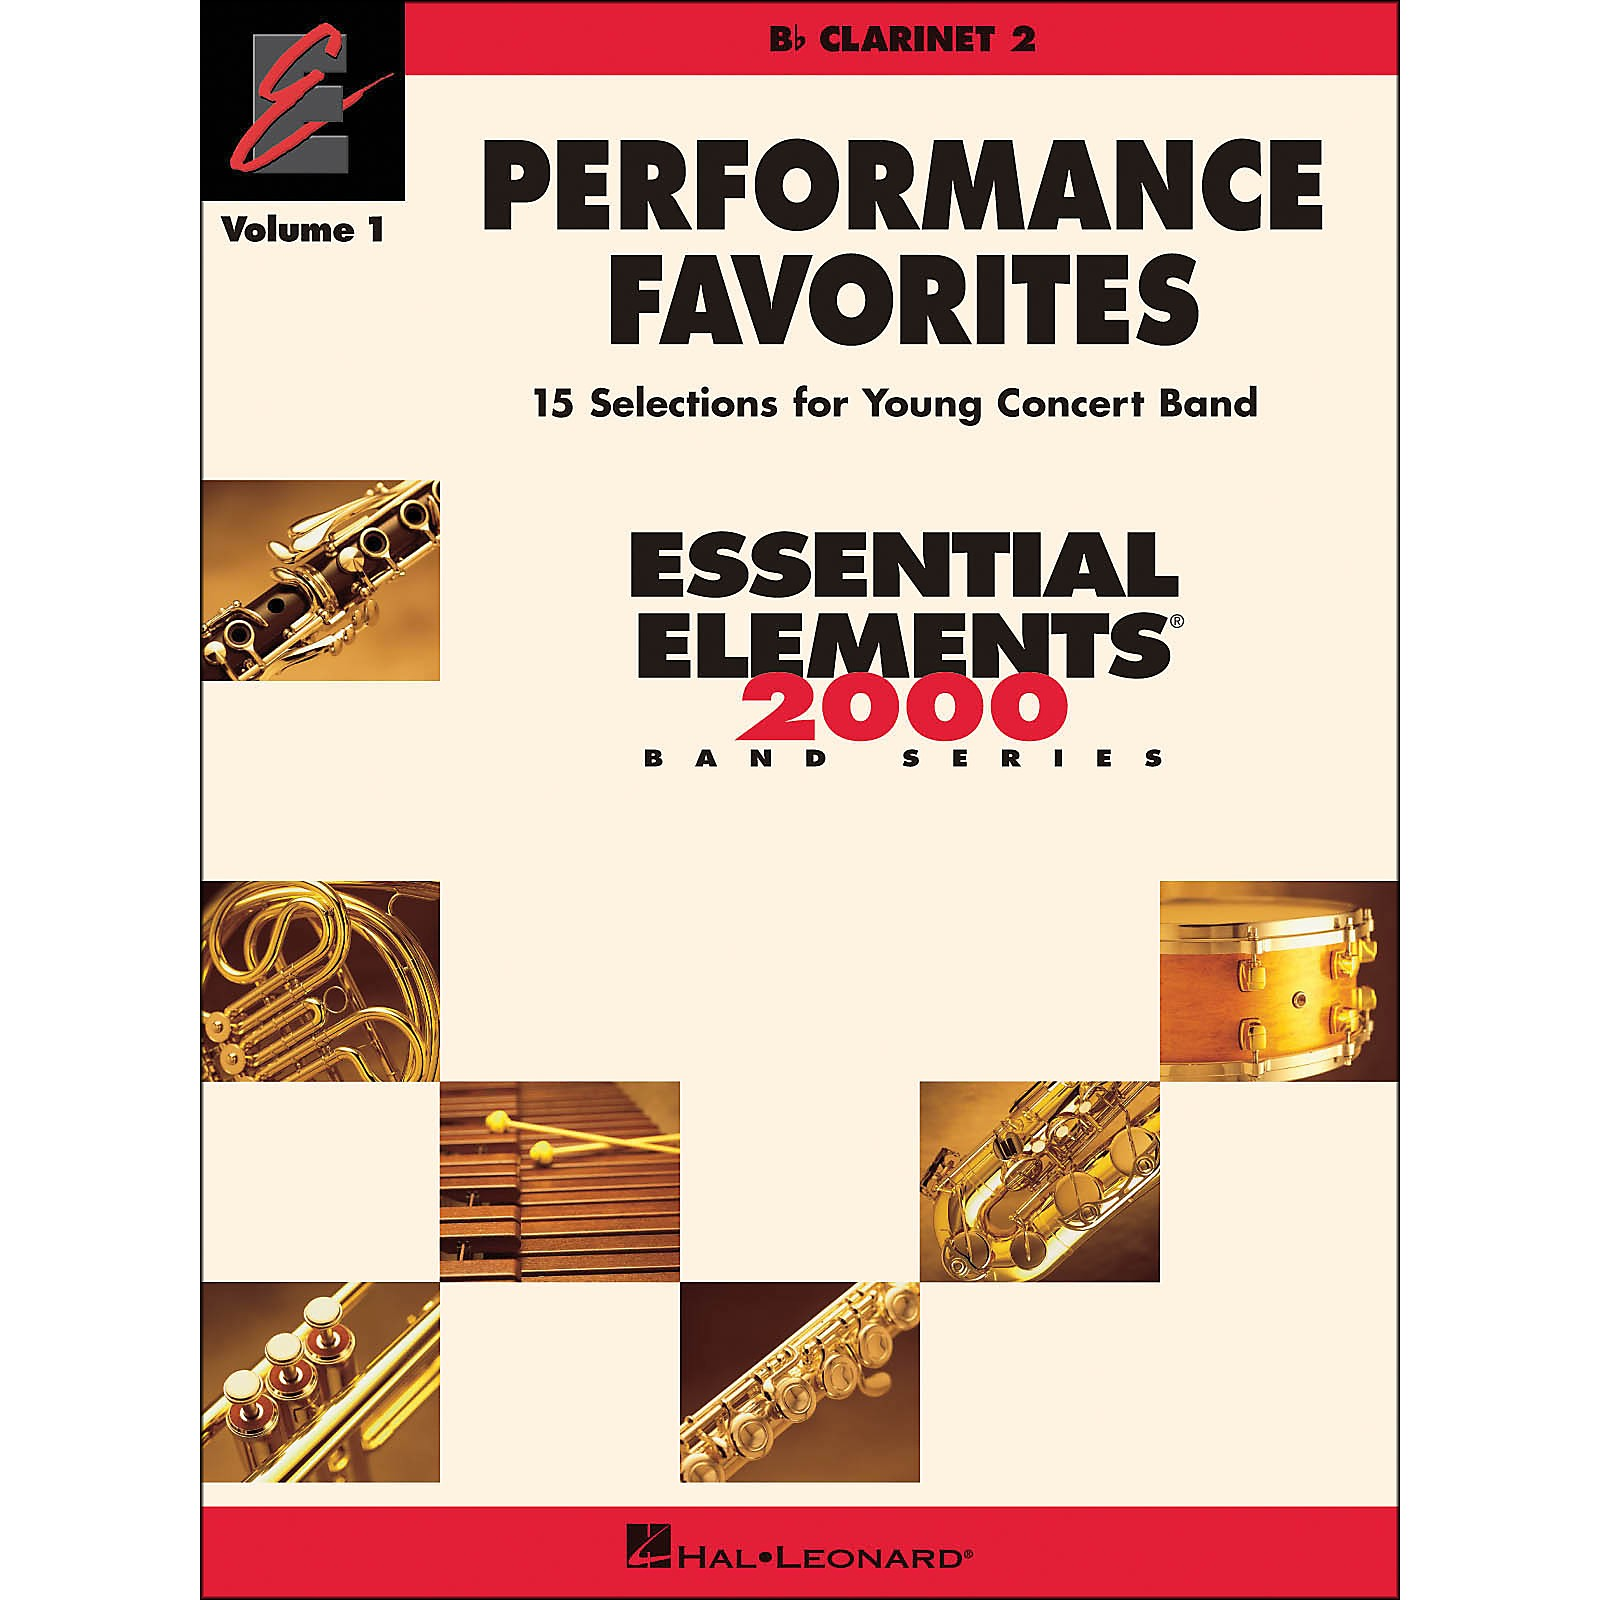 Hal Leonard Performance Favorites Volume 1 Clarinet 2